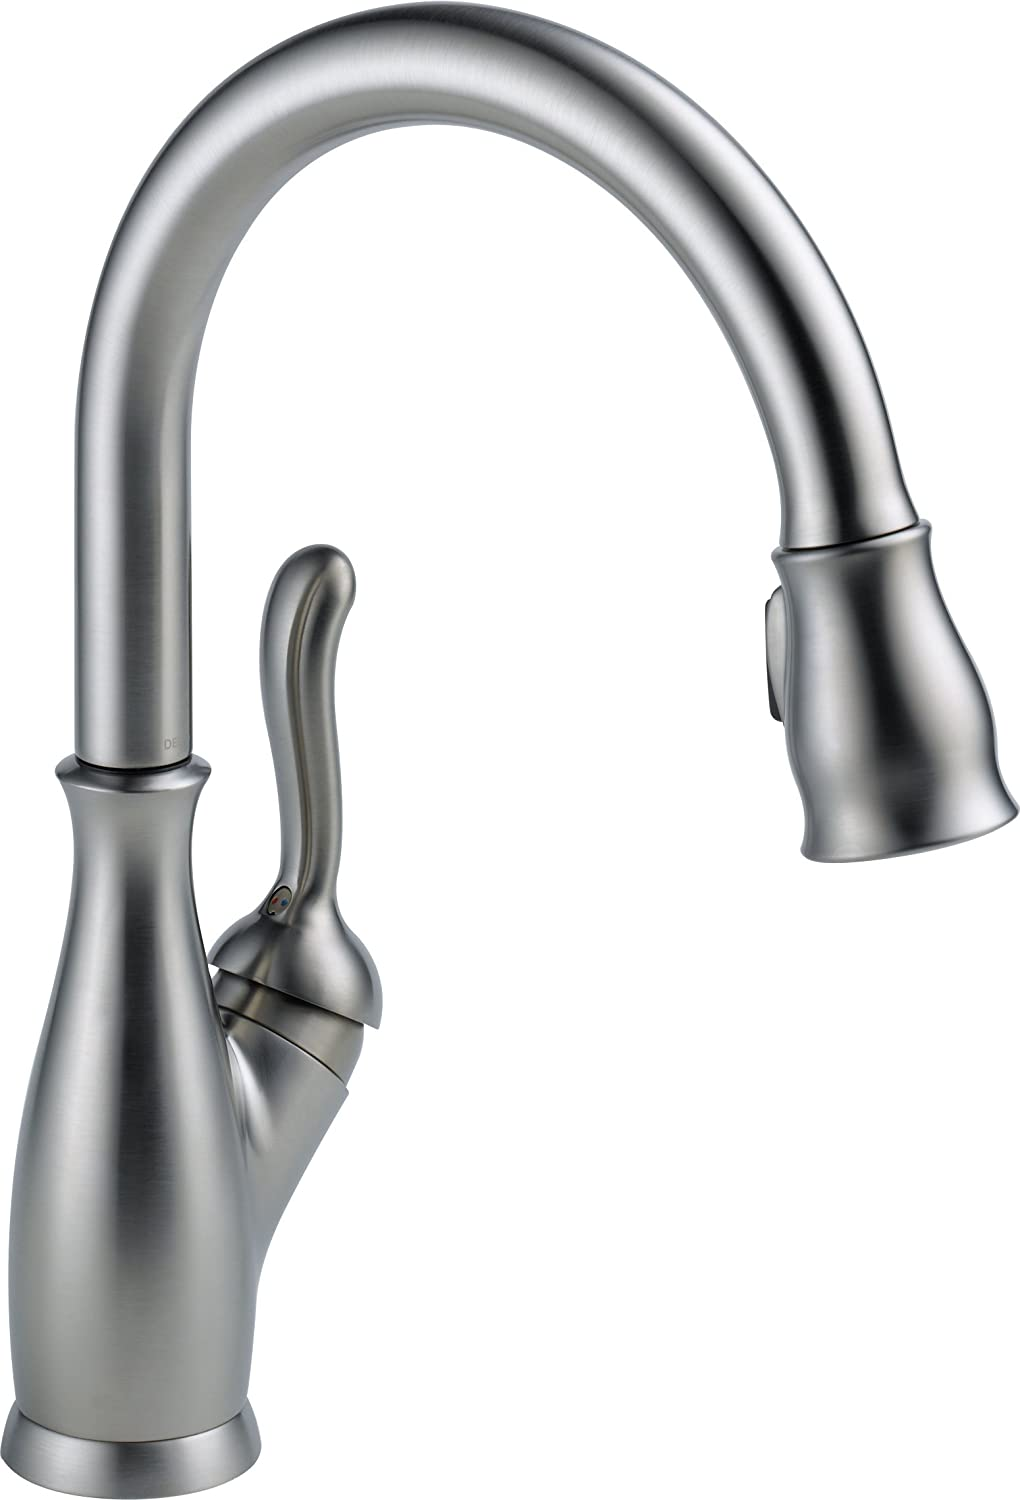 Delta 9178 AR DST Leland Single Handle Pull Down Kitchen Faucet, Arctic